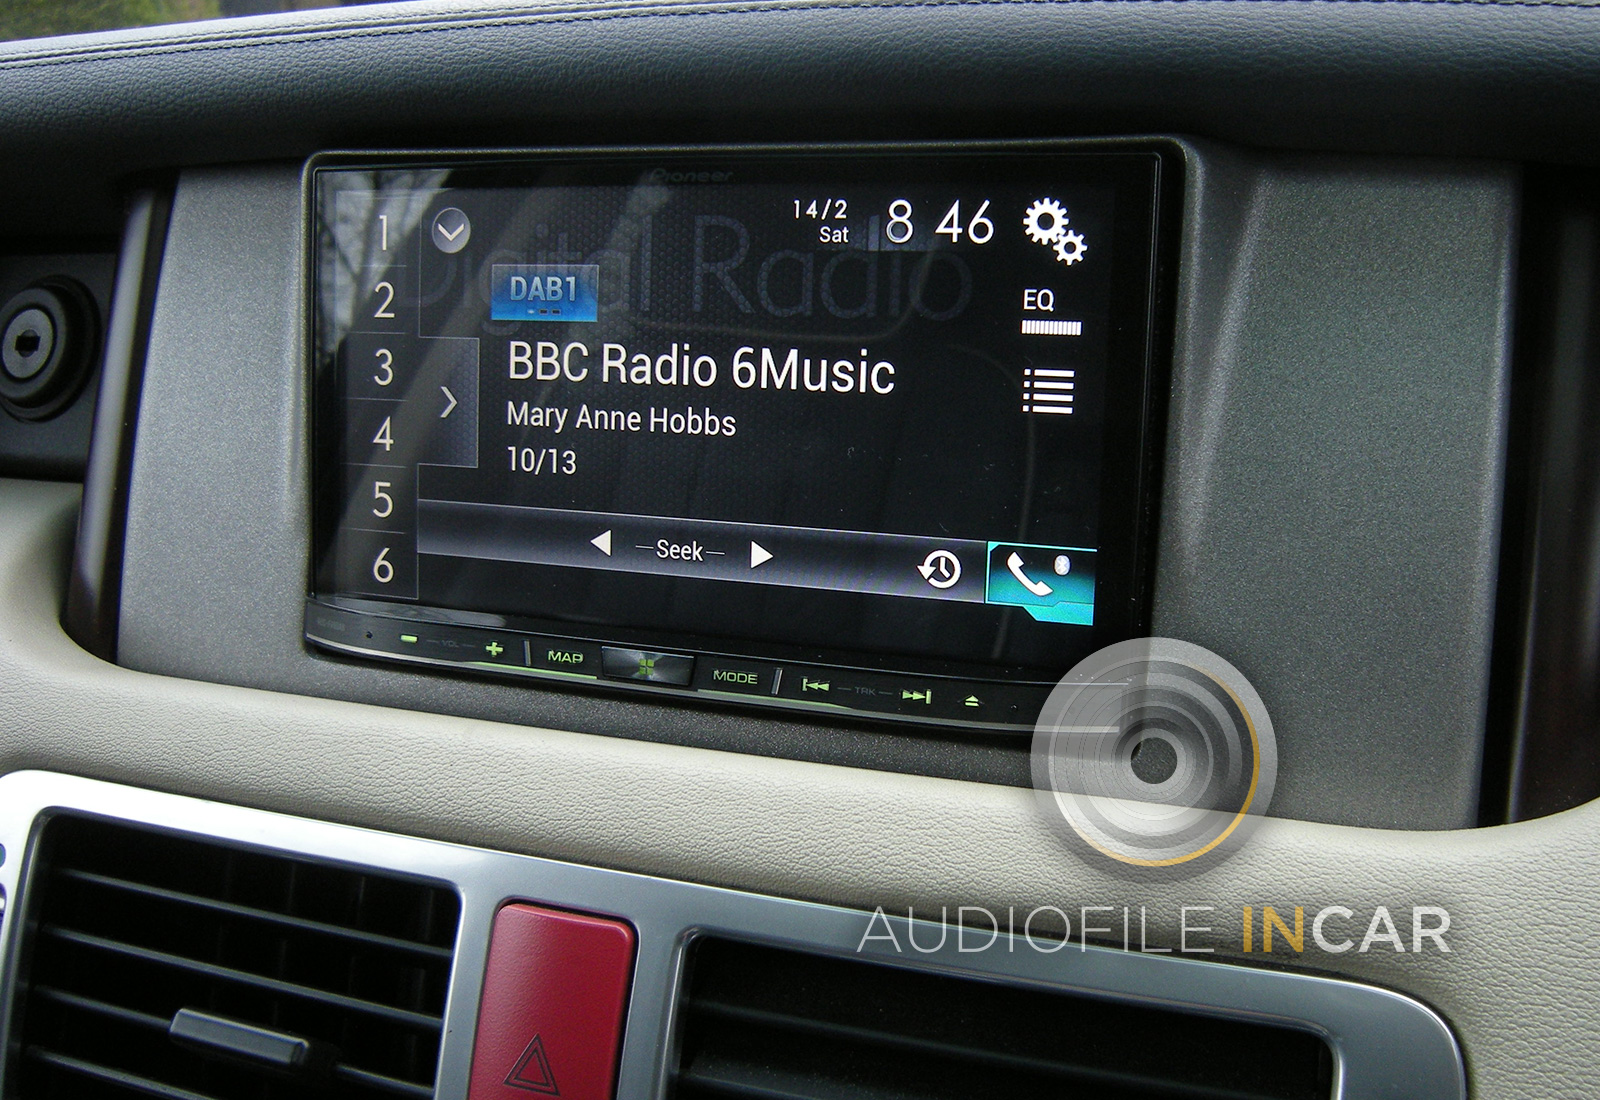 Range Rover Satalite Navigation Replacement Rpgrade Audiofile Incar